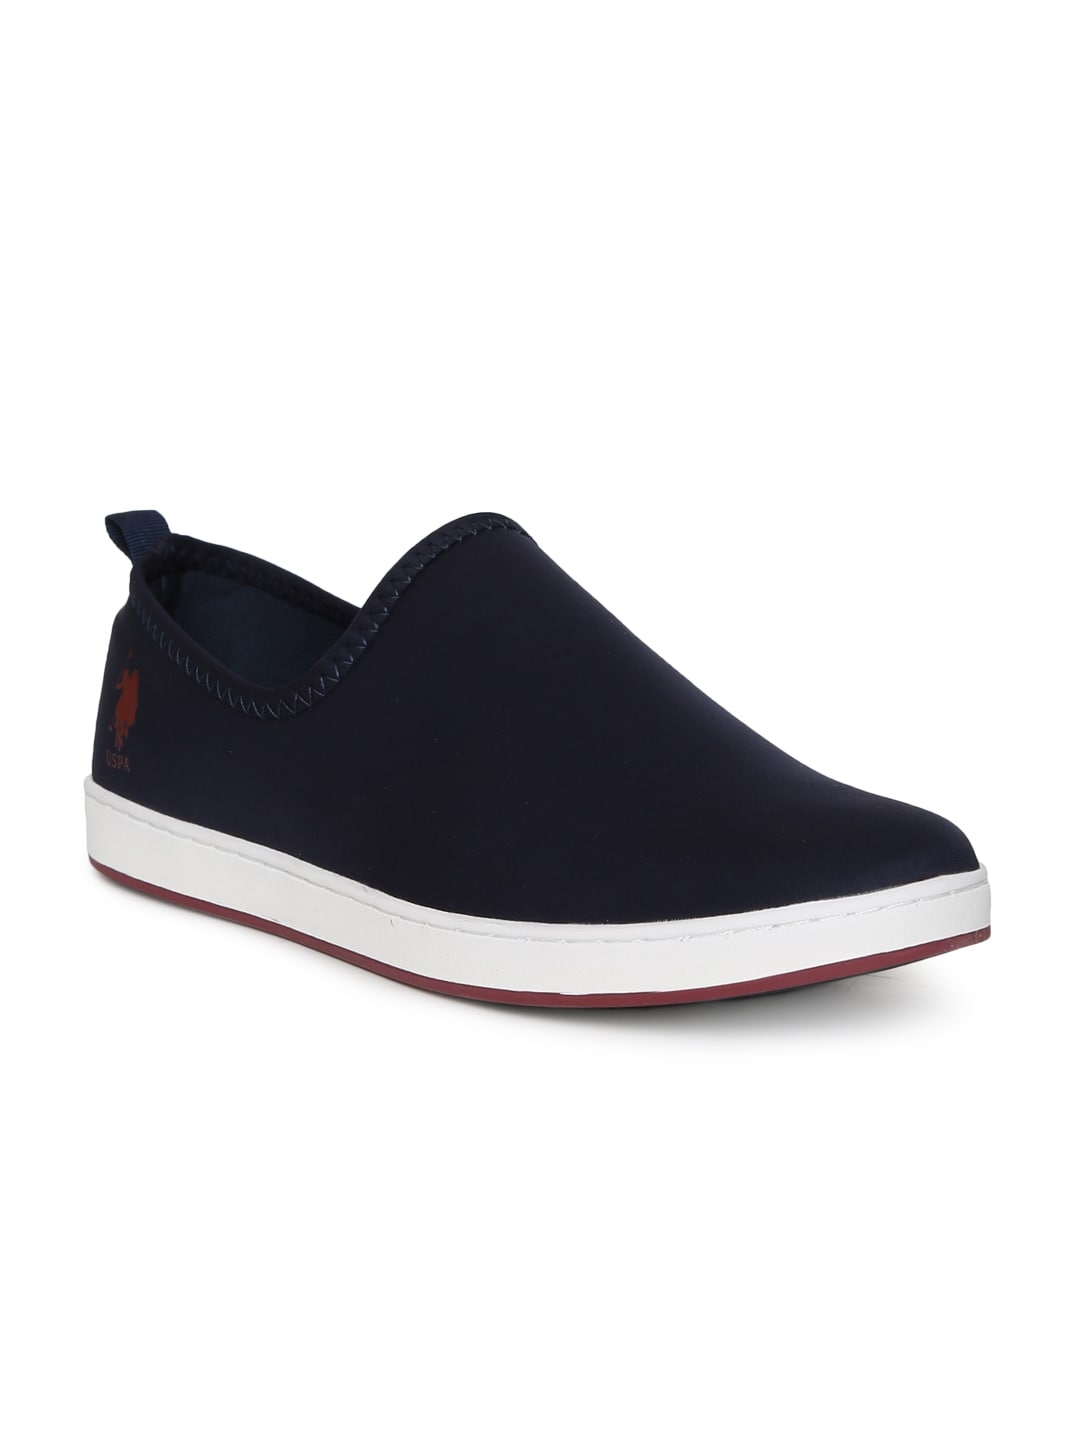 ef57580bce5245 Casual Shoes For Men - Buy Casual   Flat Shoes For Men